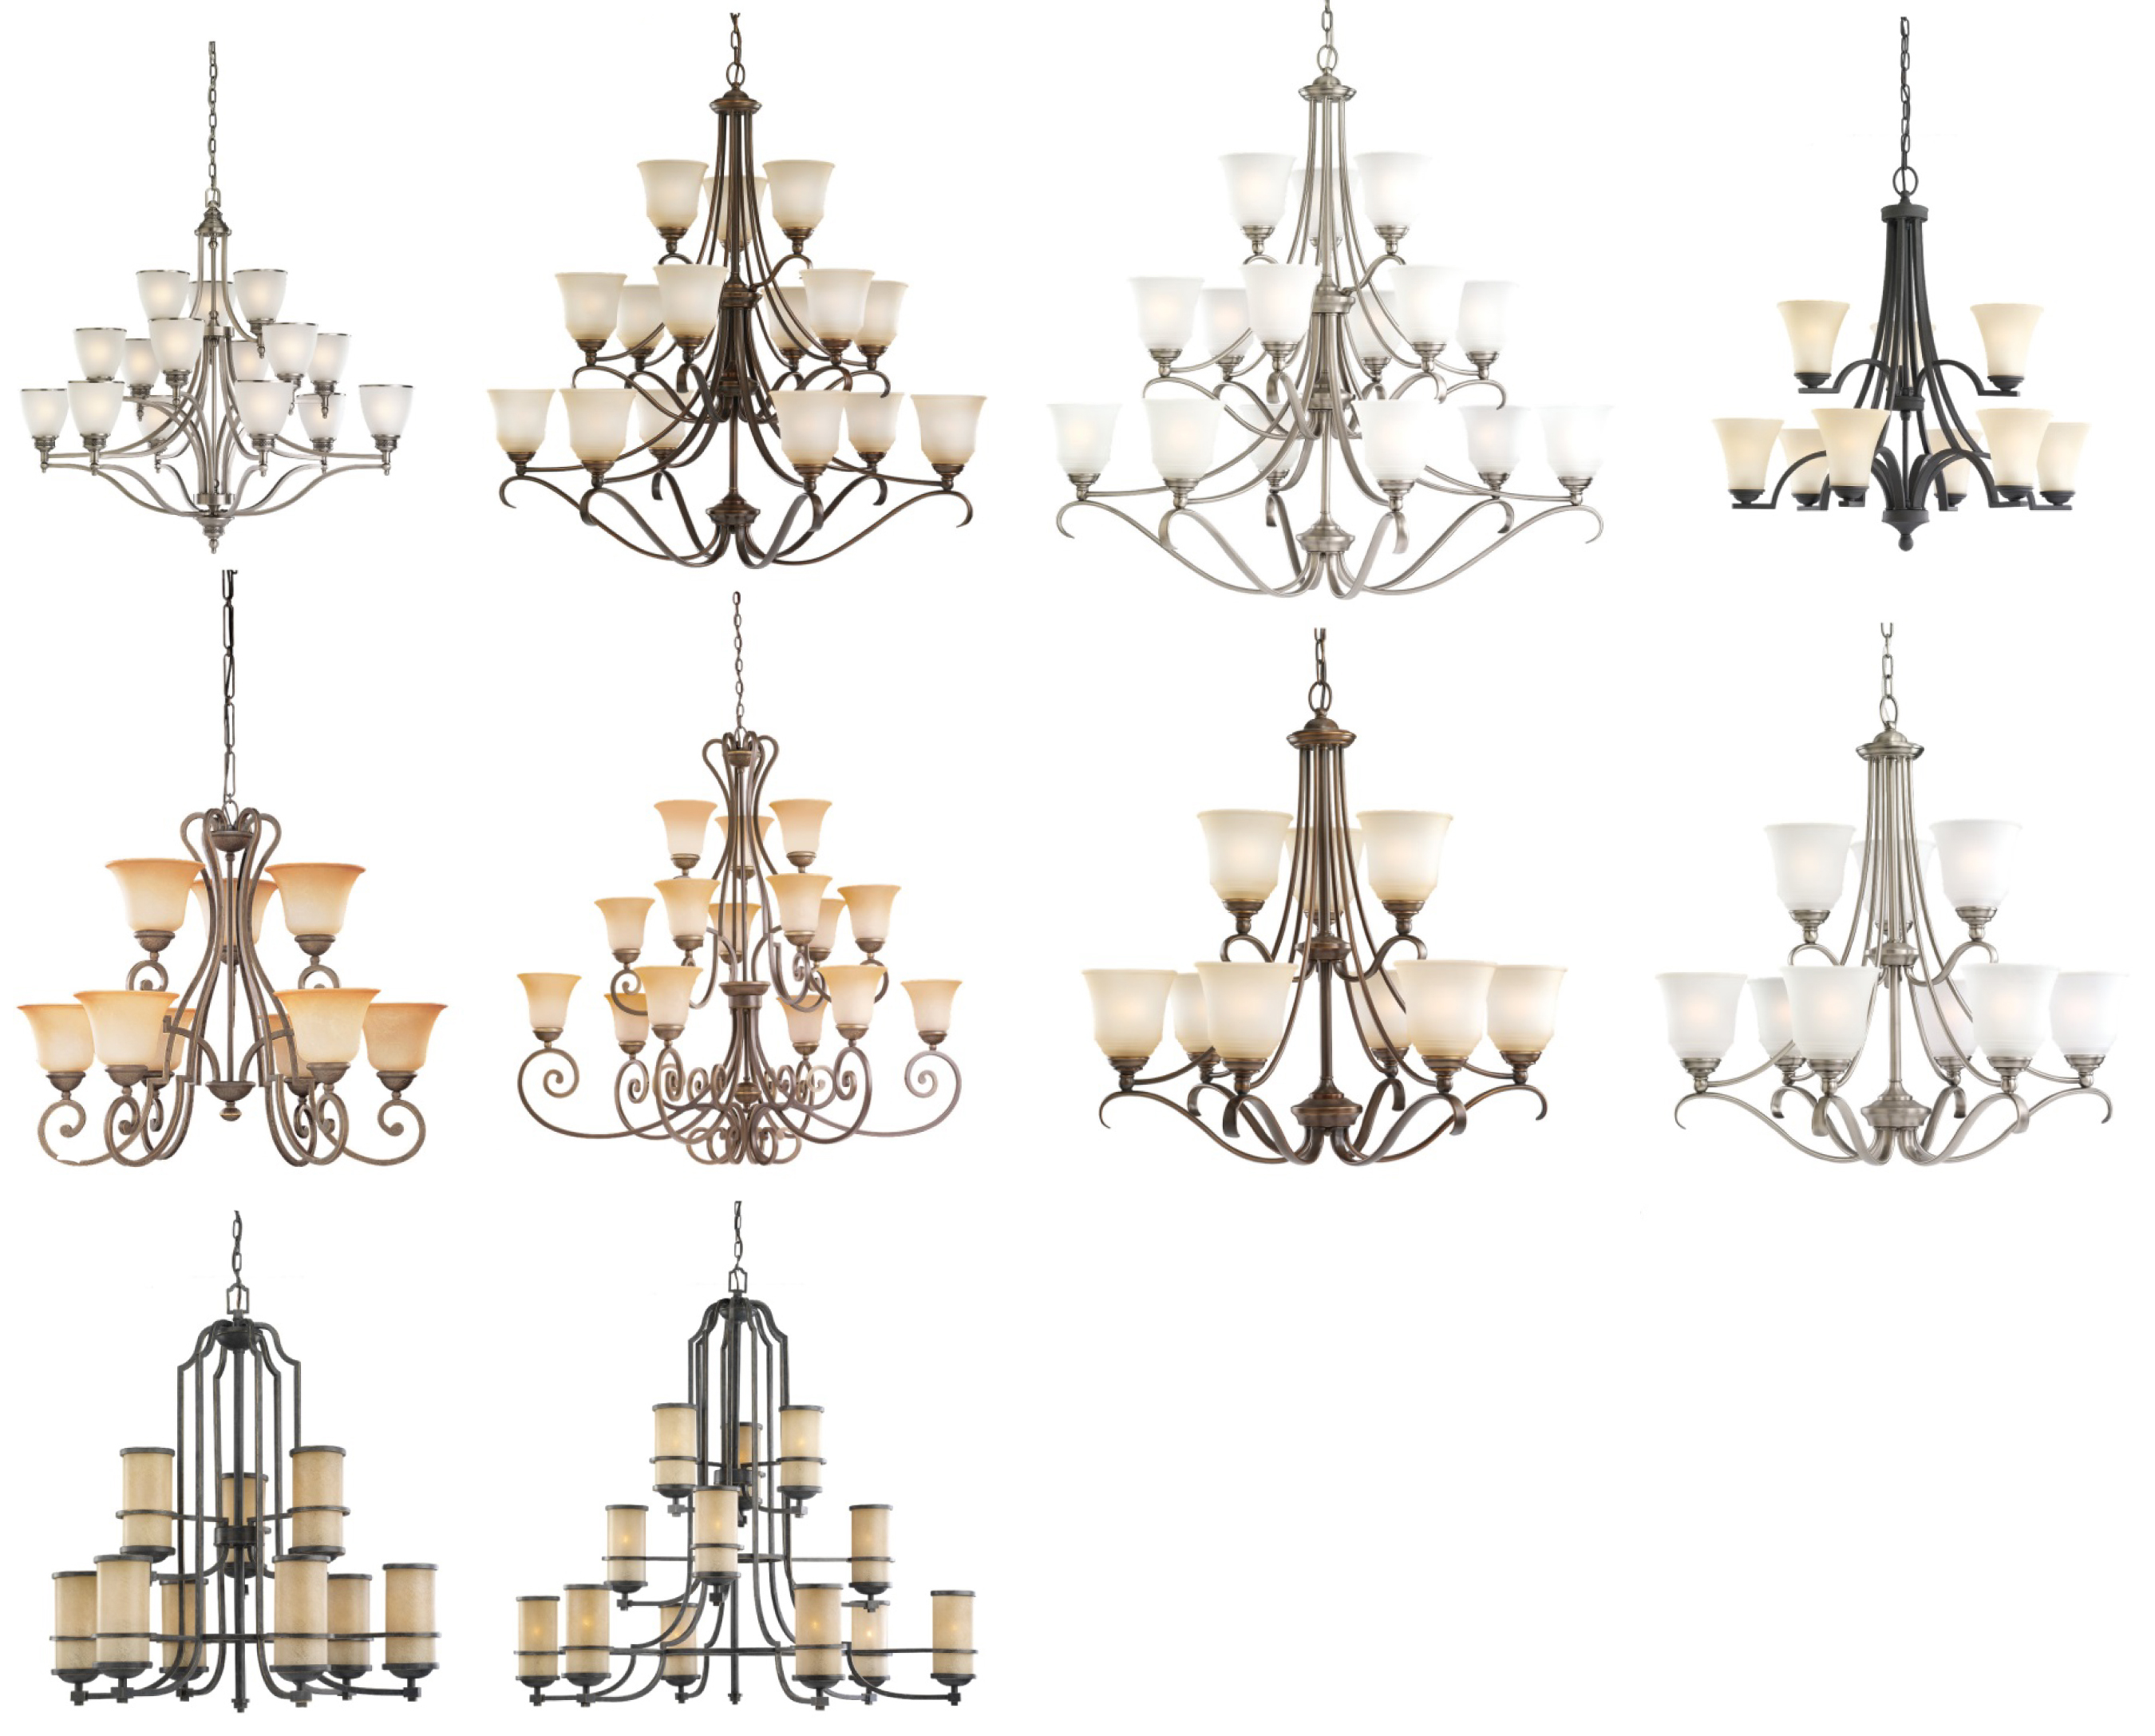 10 versions of recalled seagull chandeliers please see chart in recall for full images of